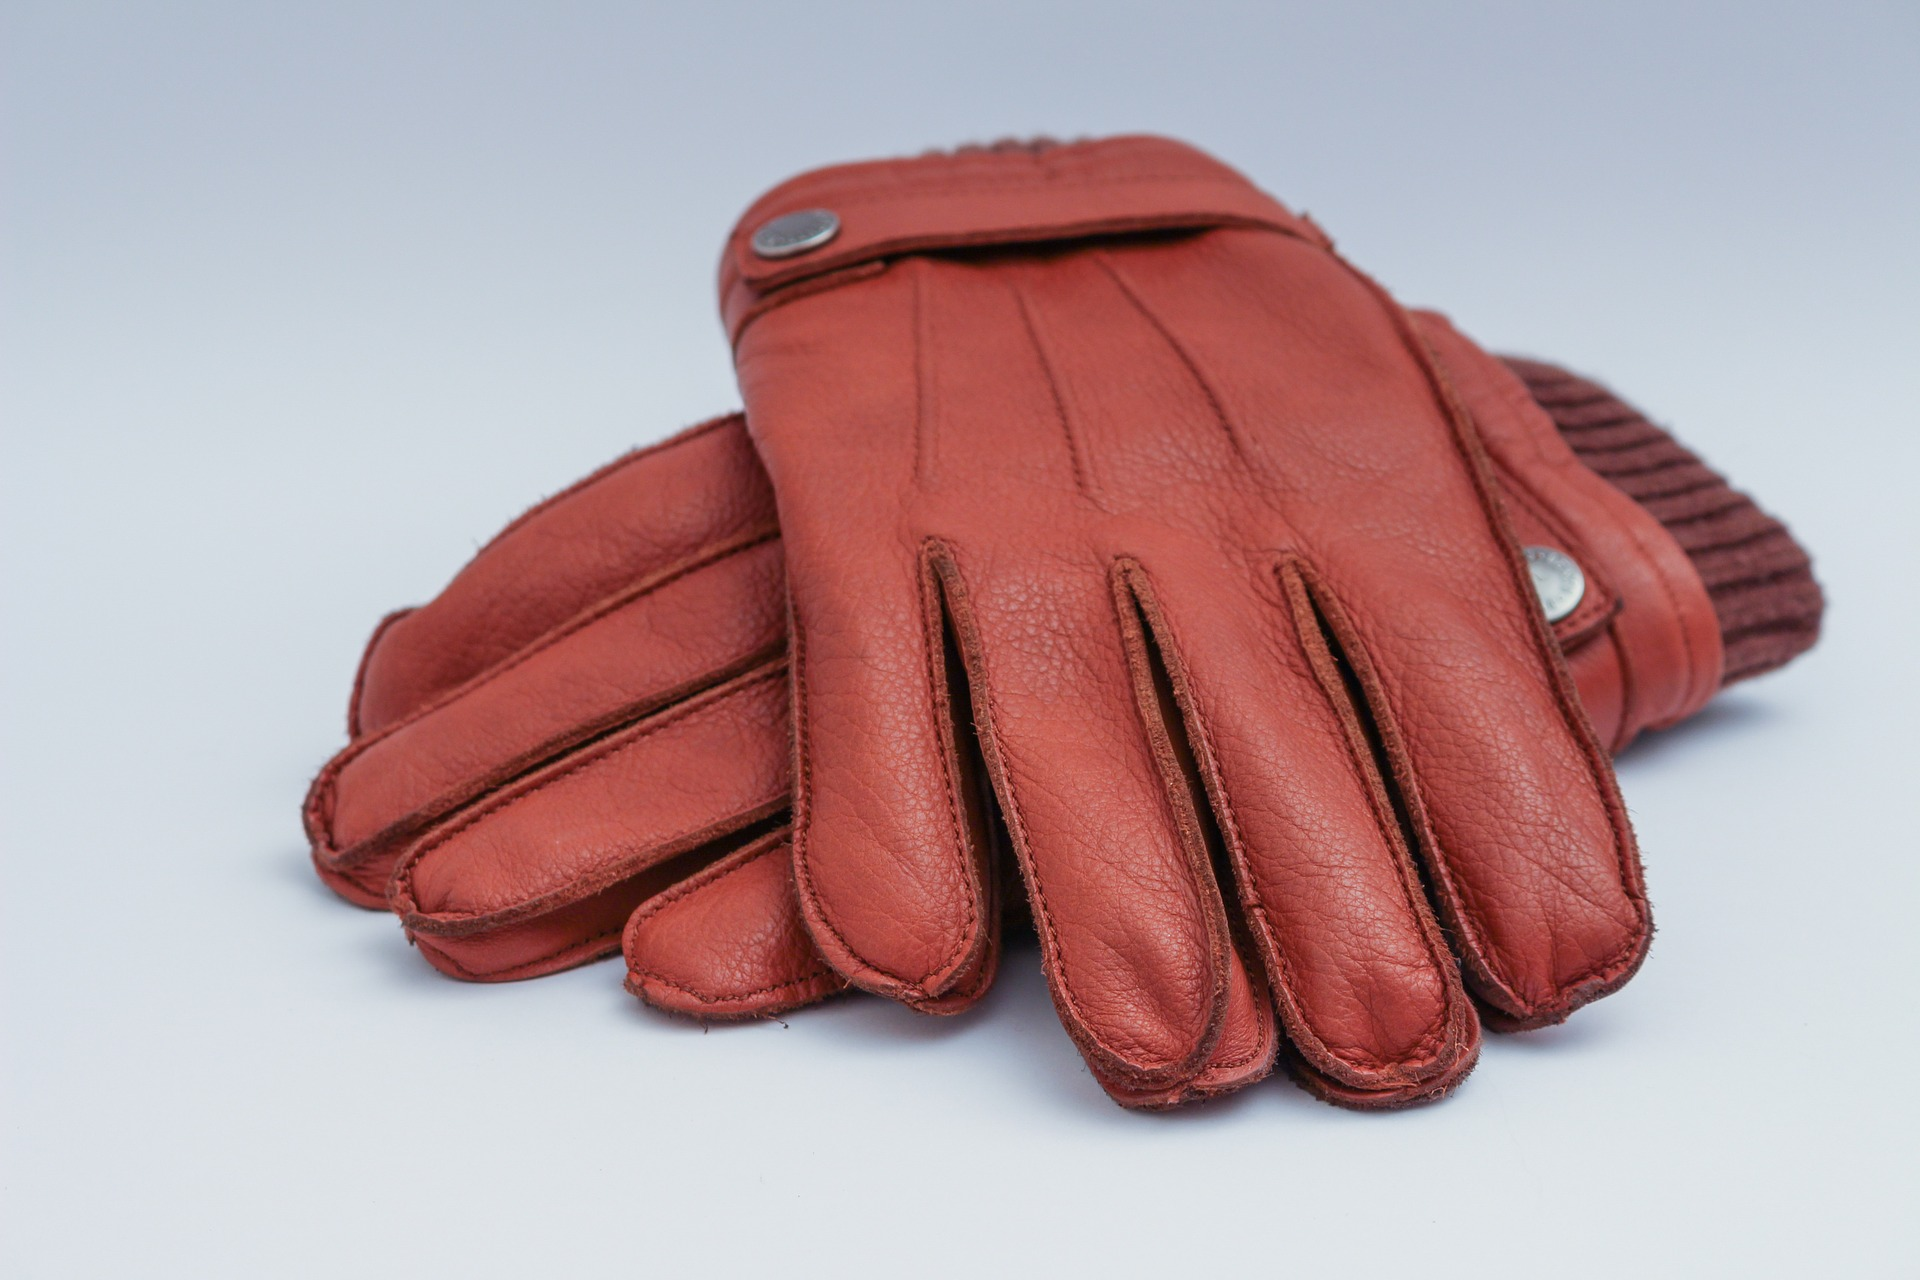 mens-leather-gloves-1194450_1920